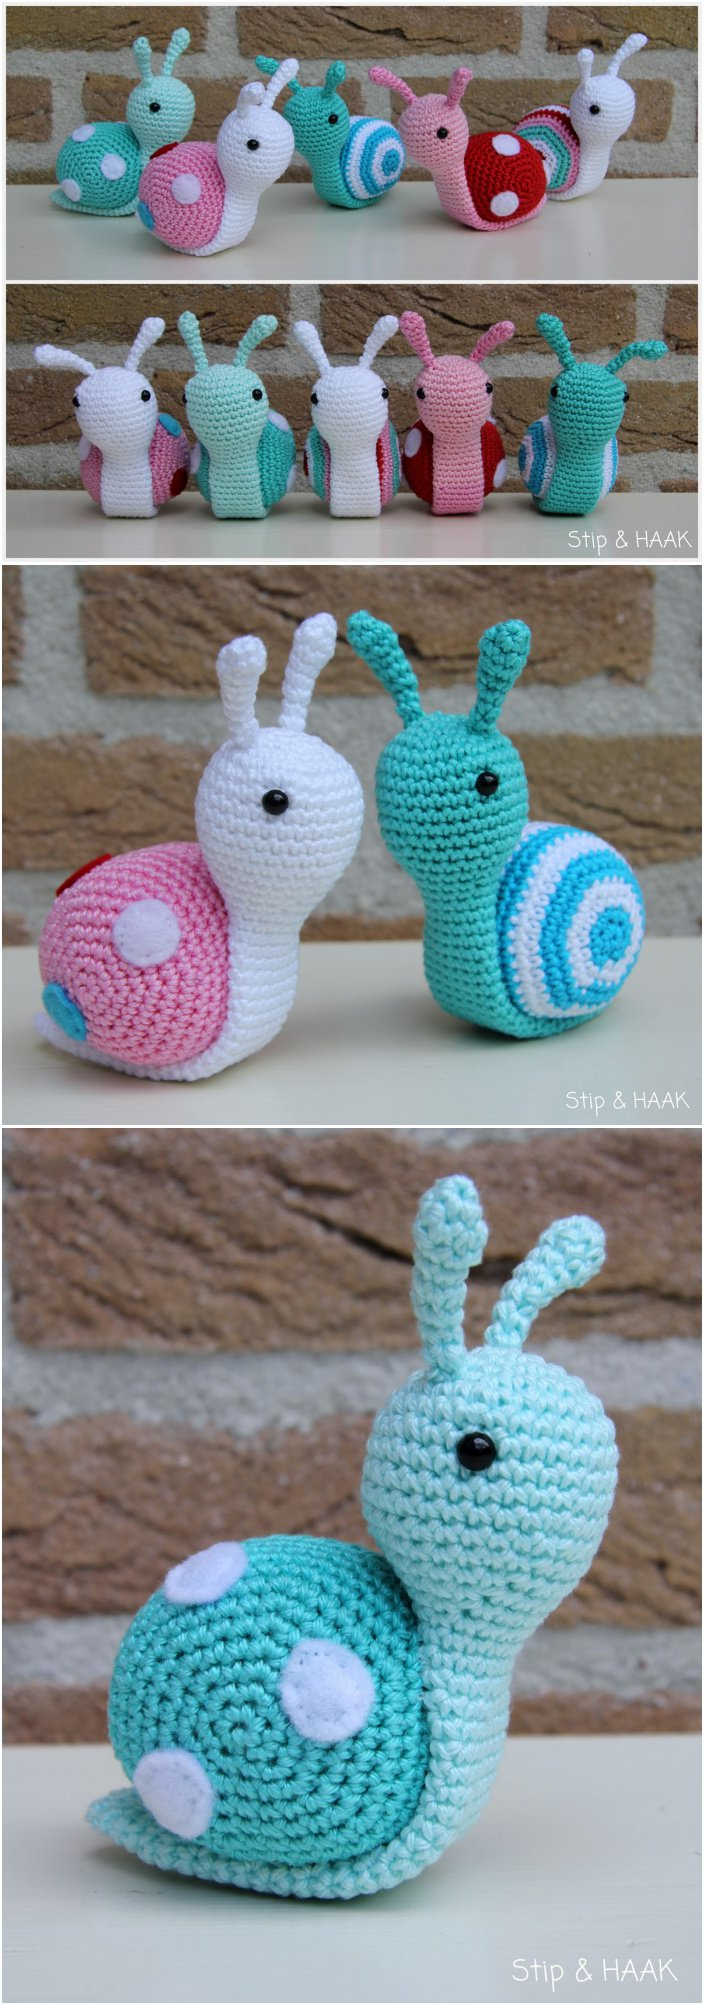 GET THE FREE AMIGURUMI PATTERN HERE - Snail Sofie by Stip & HAAK